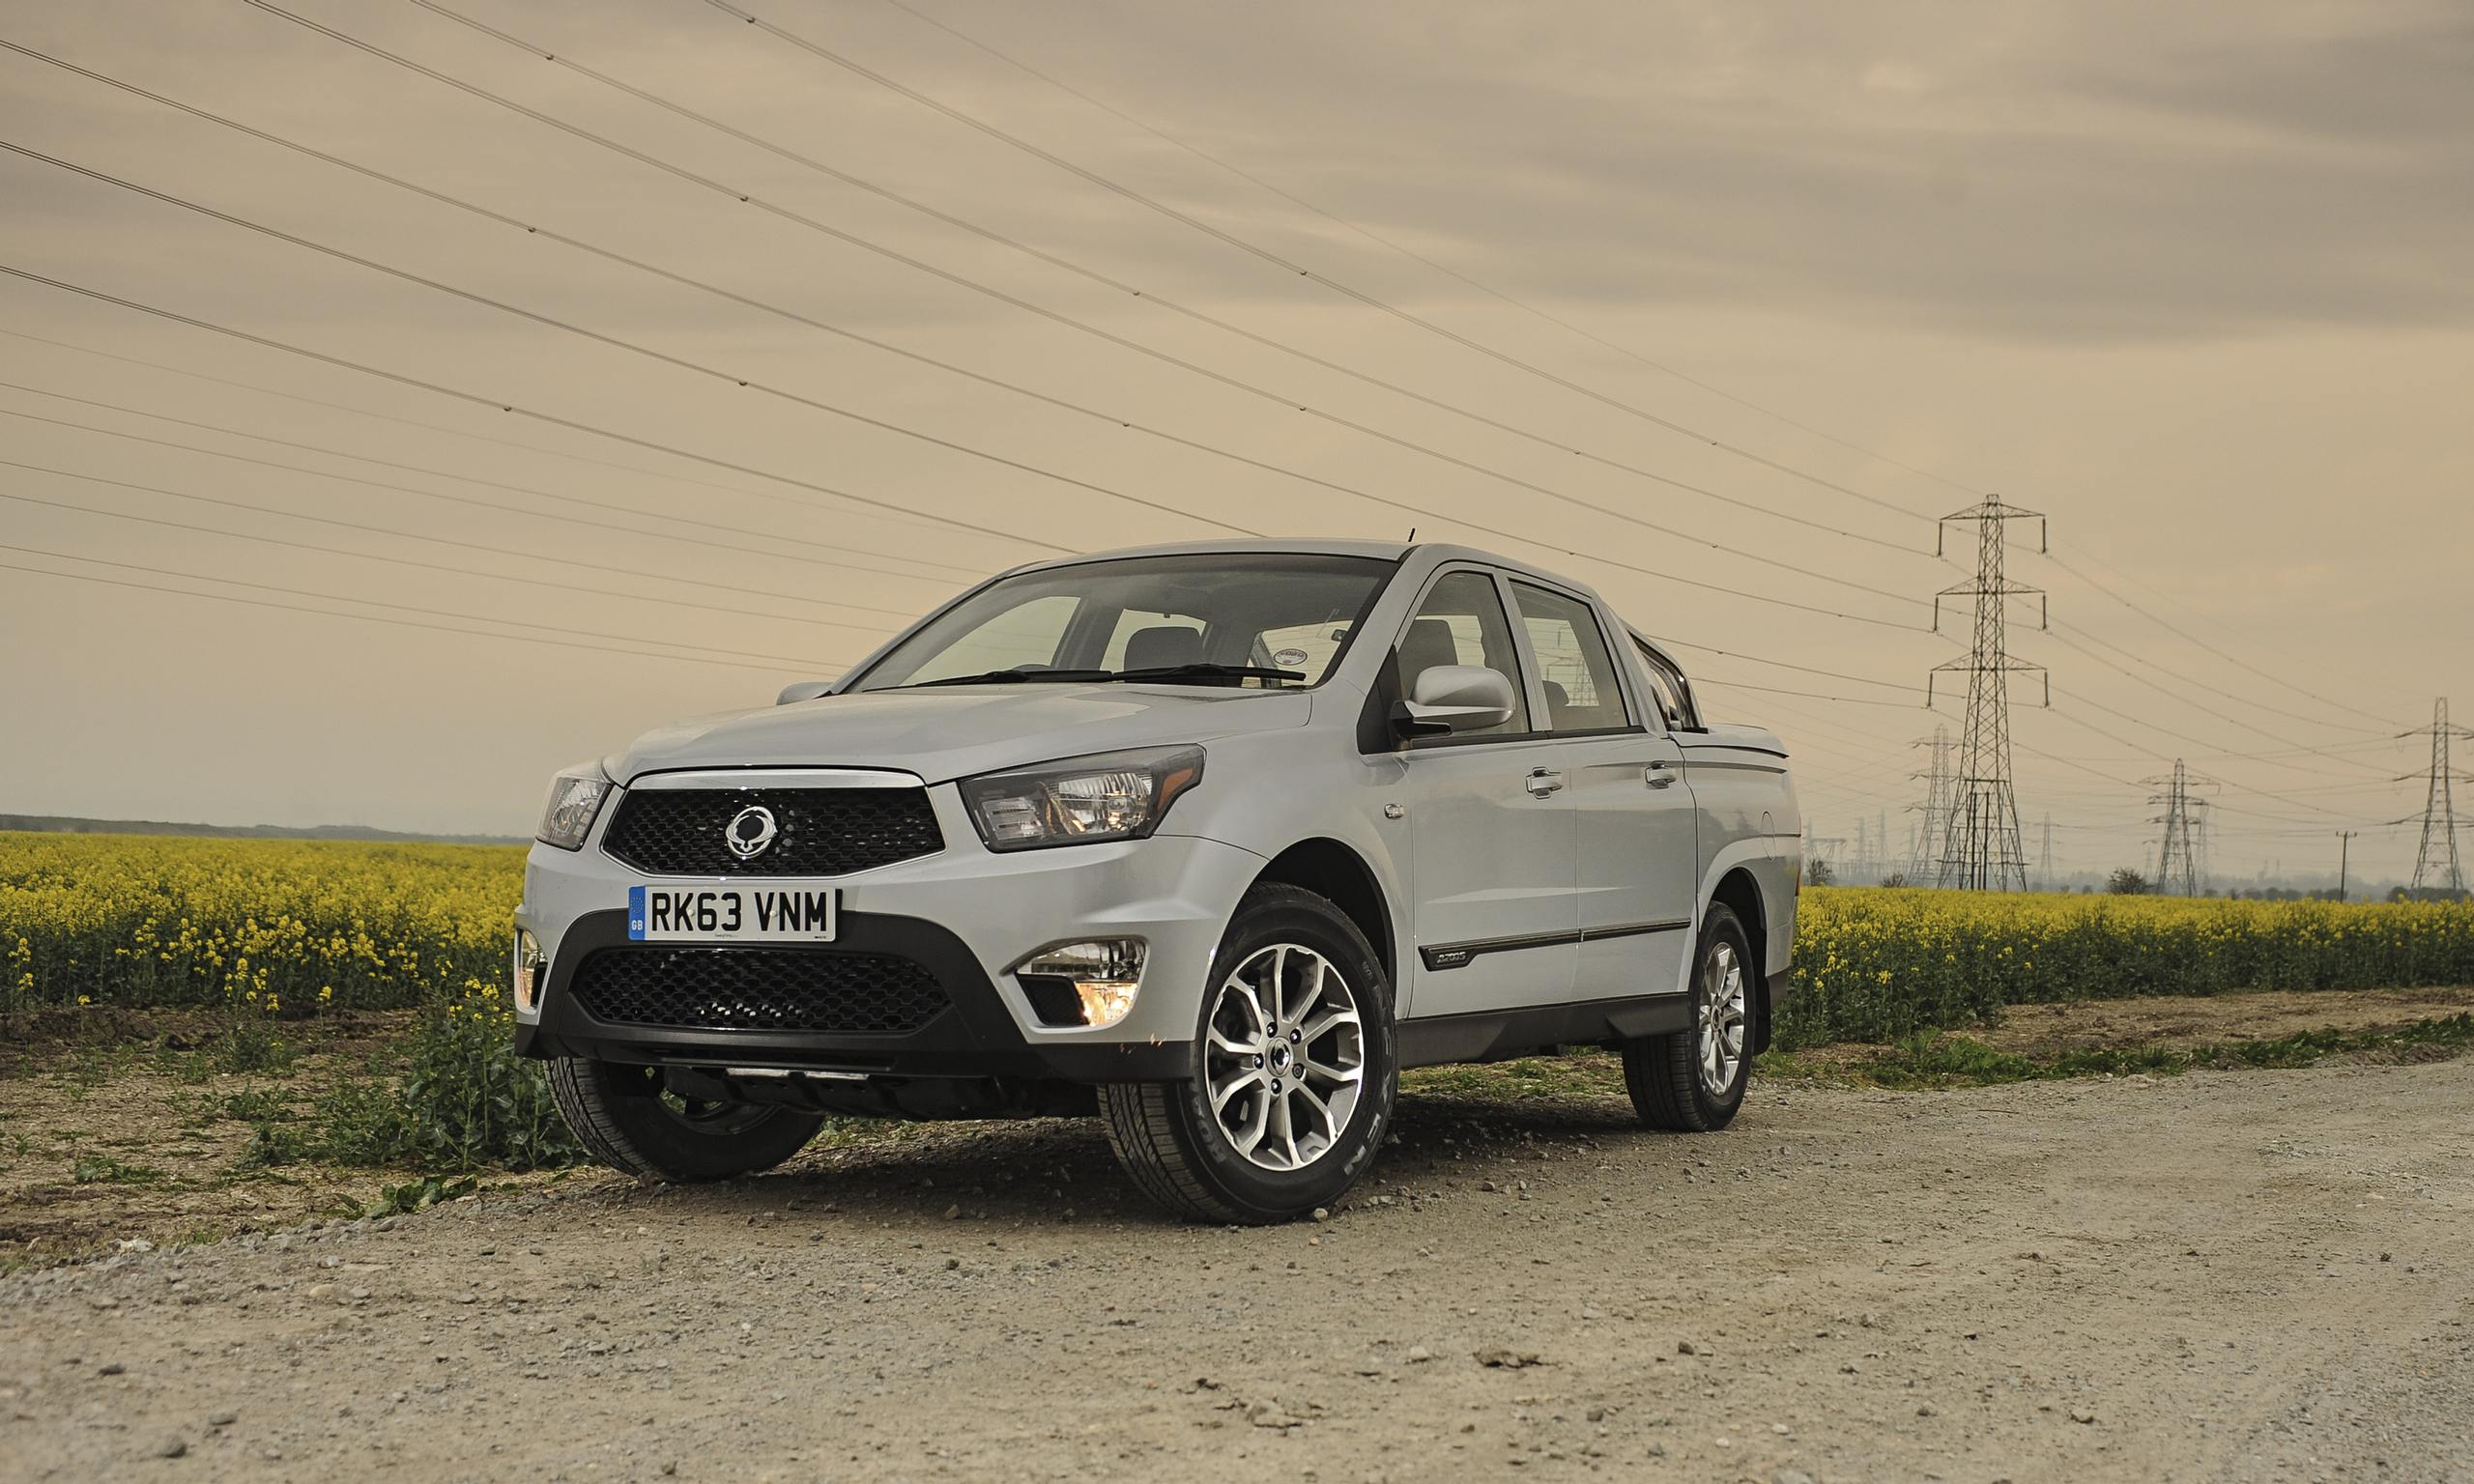 ssangyong korando sports ex car review technology the guardian. Black Bedroom Furniture Sets. Home Design Ideas